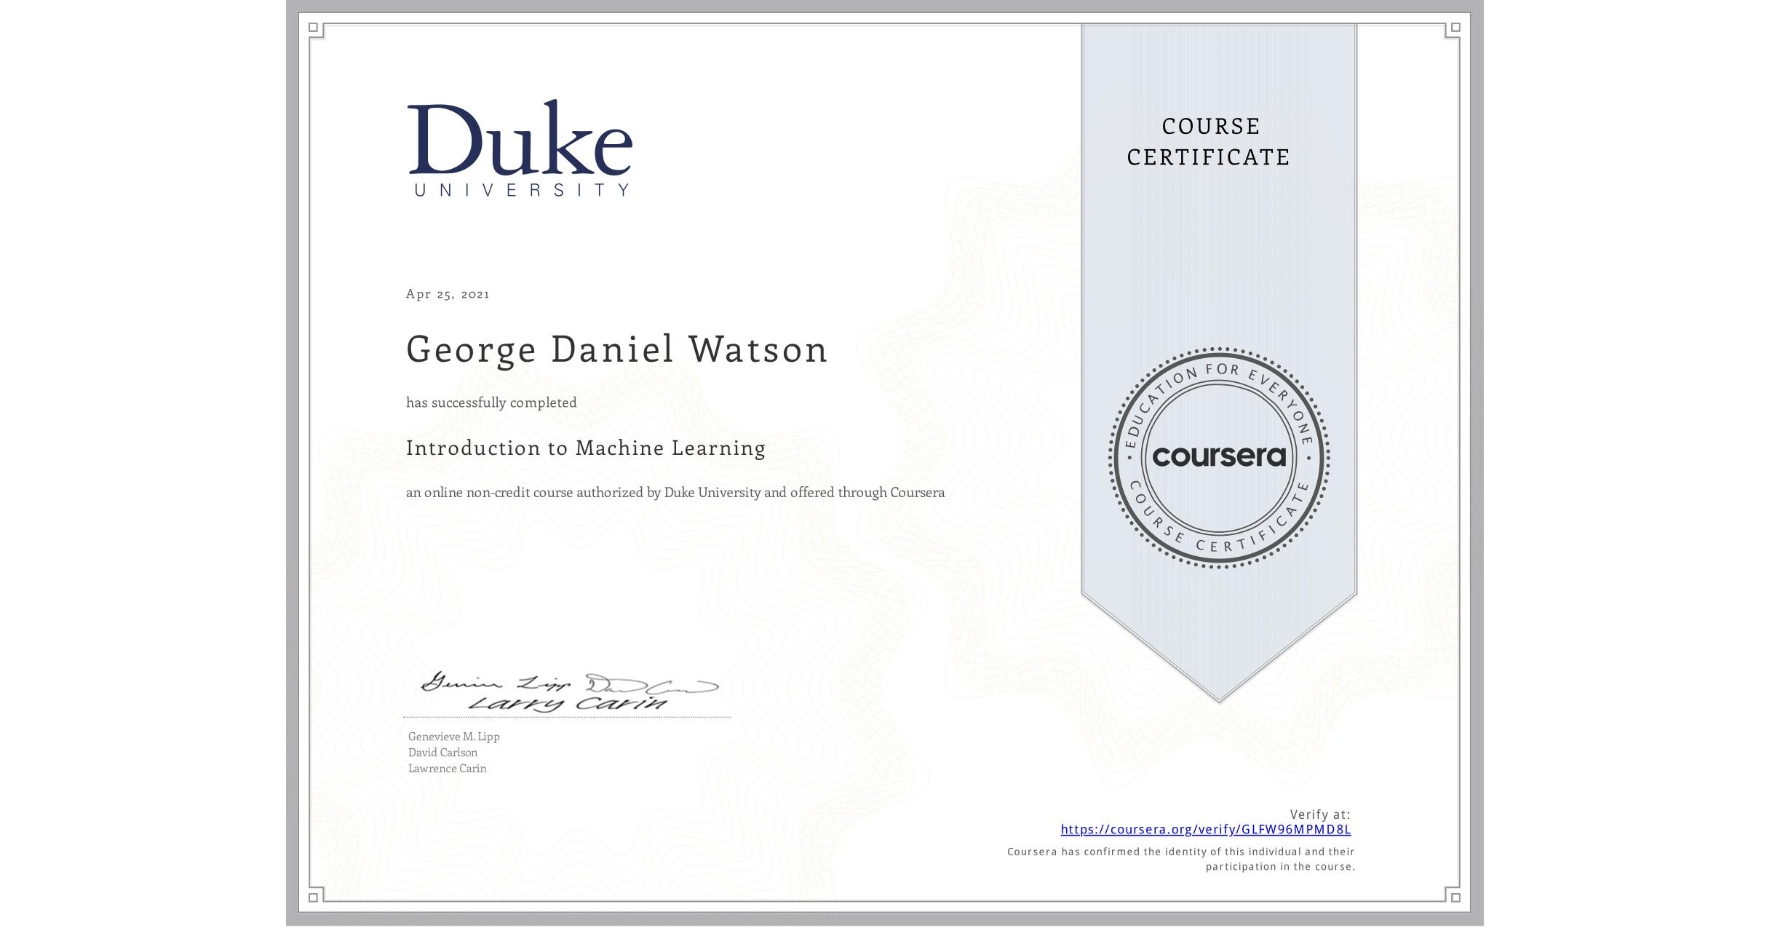 View certificate for George Daniel Watson, Introduction to Machine Learning, an online non-credit course authorized by Duke University and offered through Coursera